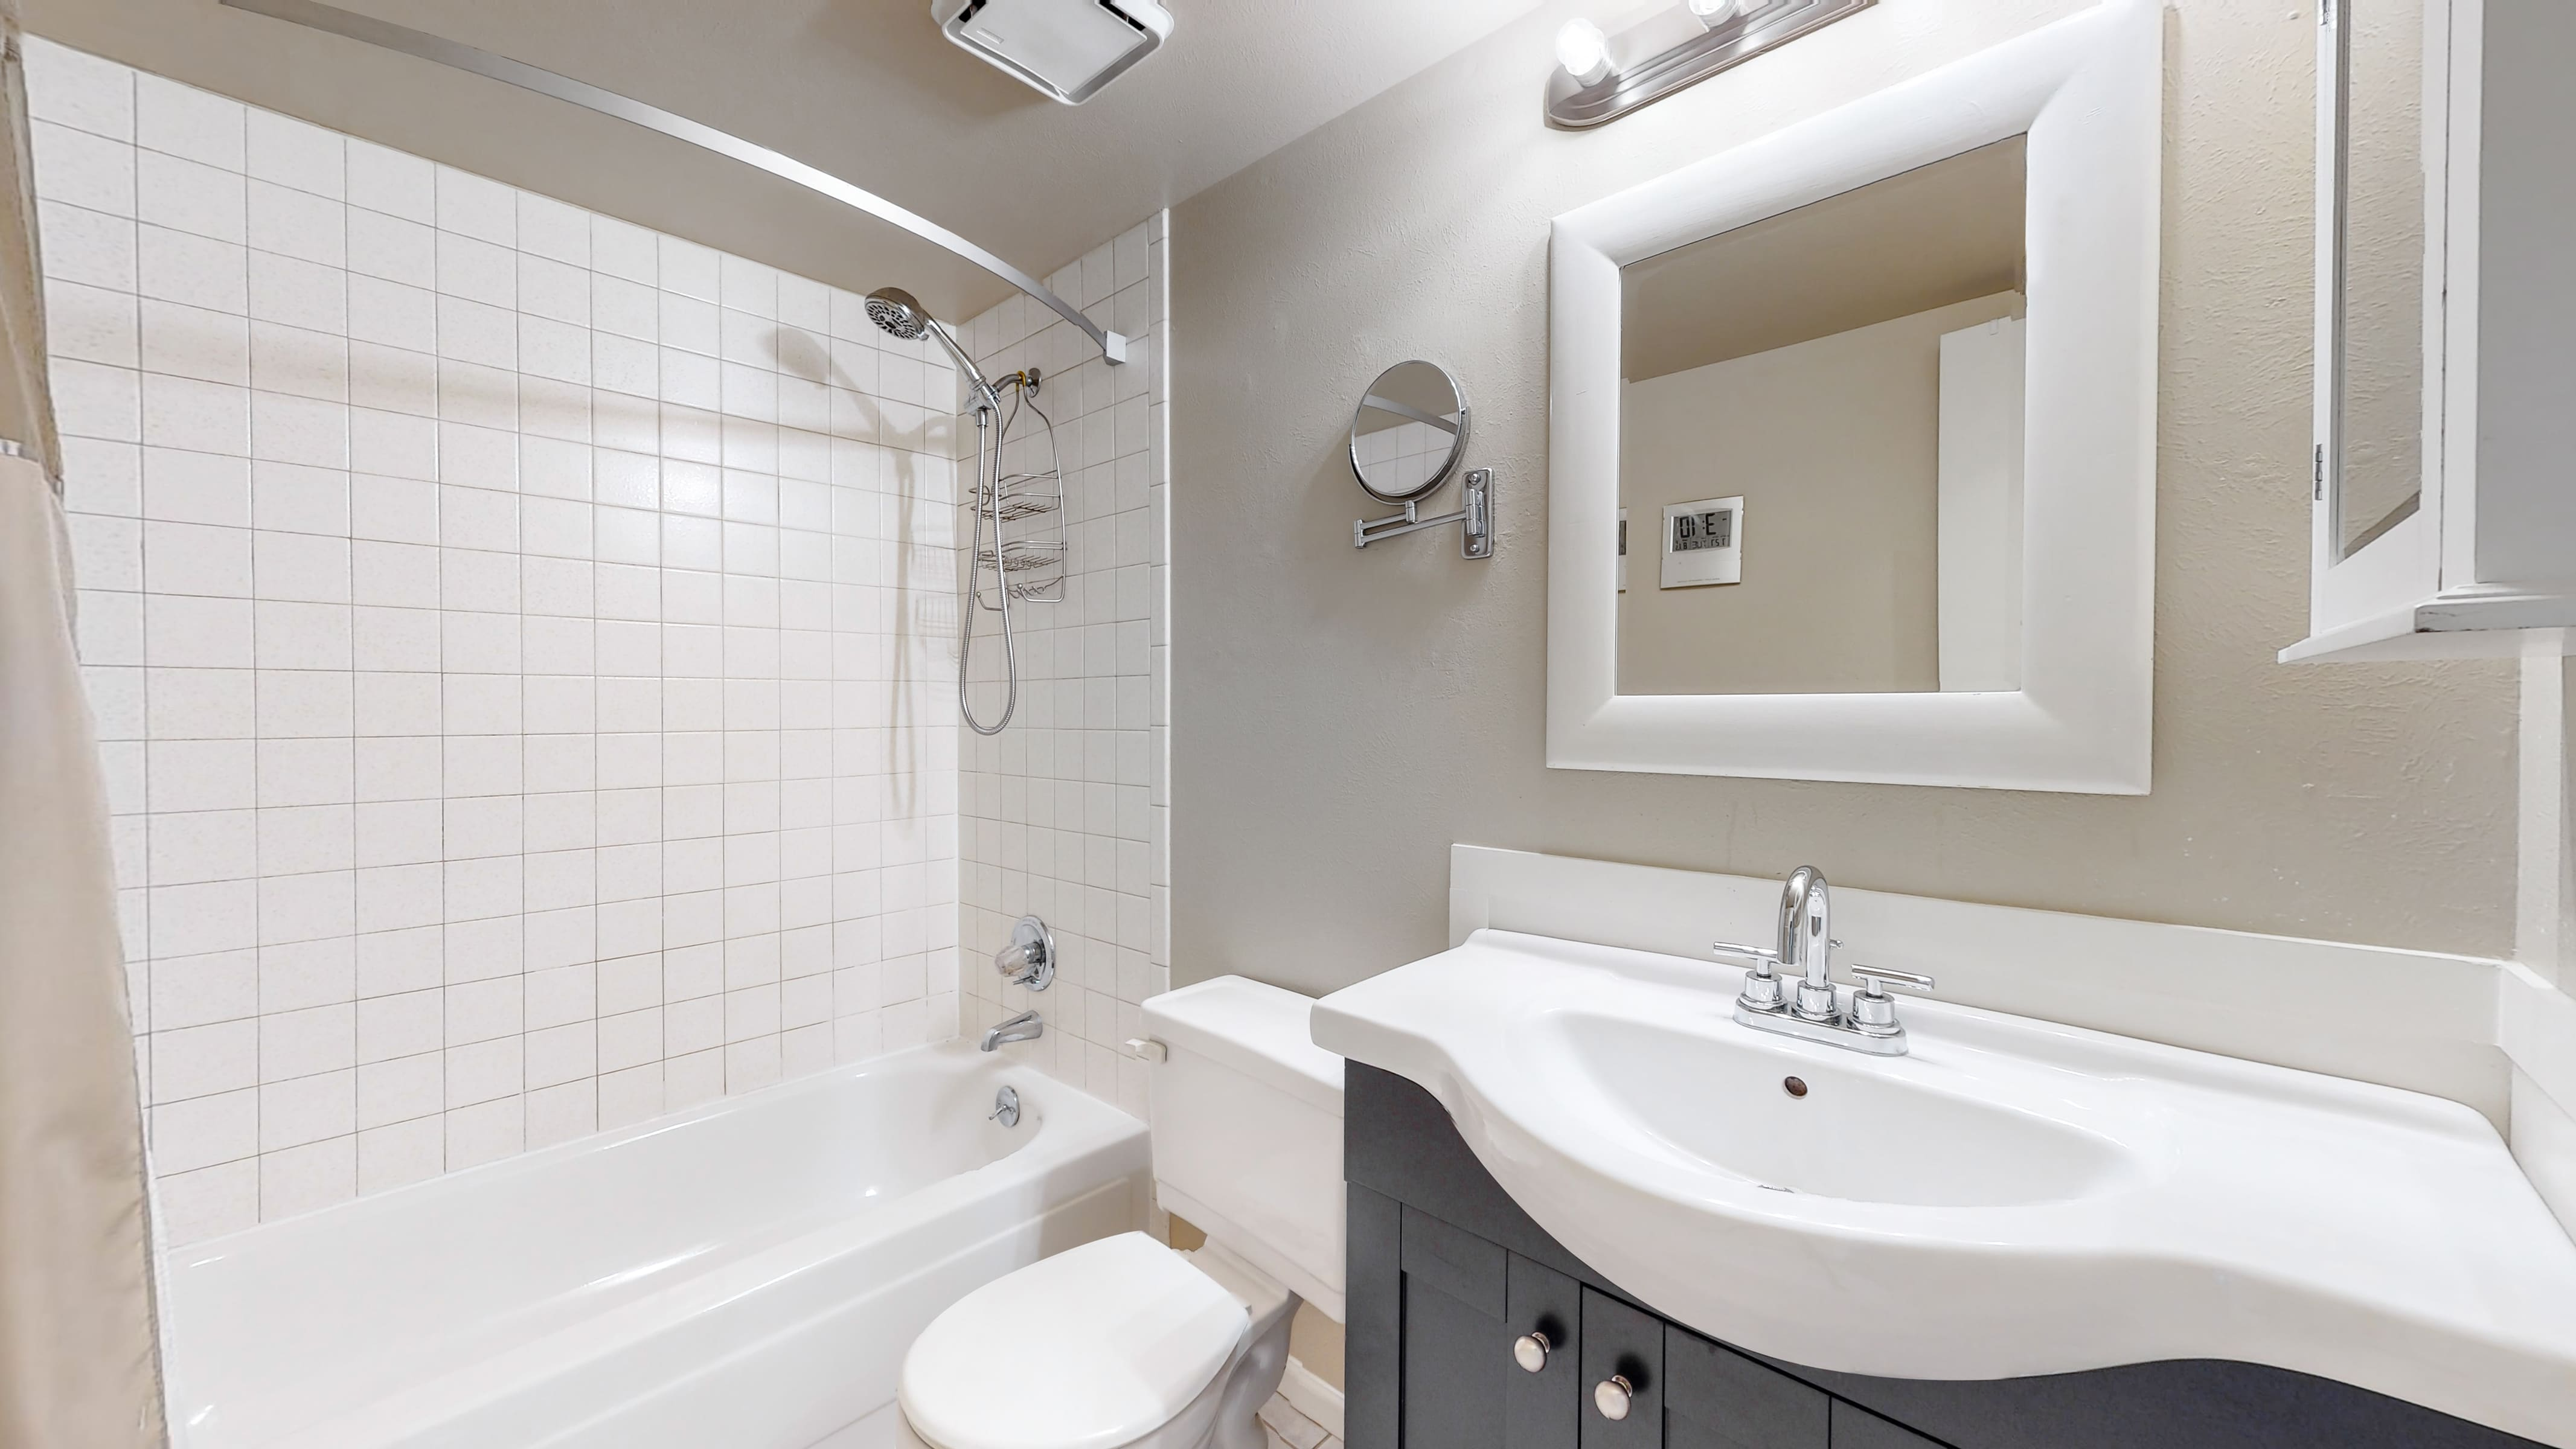 Home for sale in Arvada, upstairs bathroom, white tile